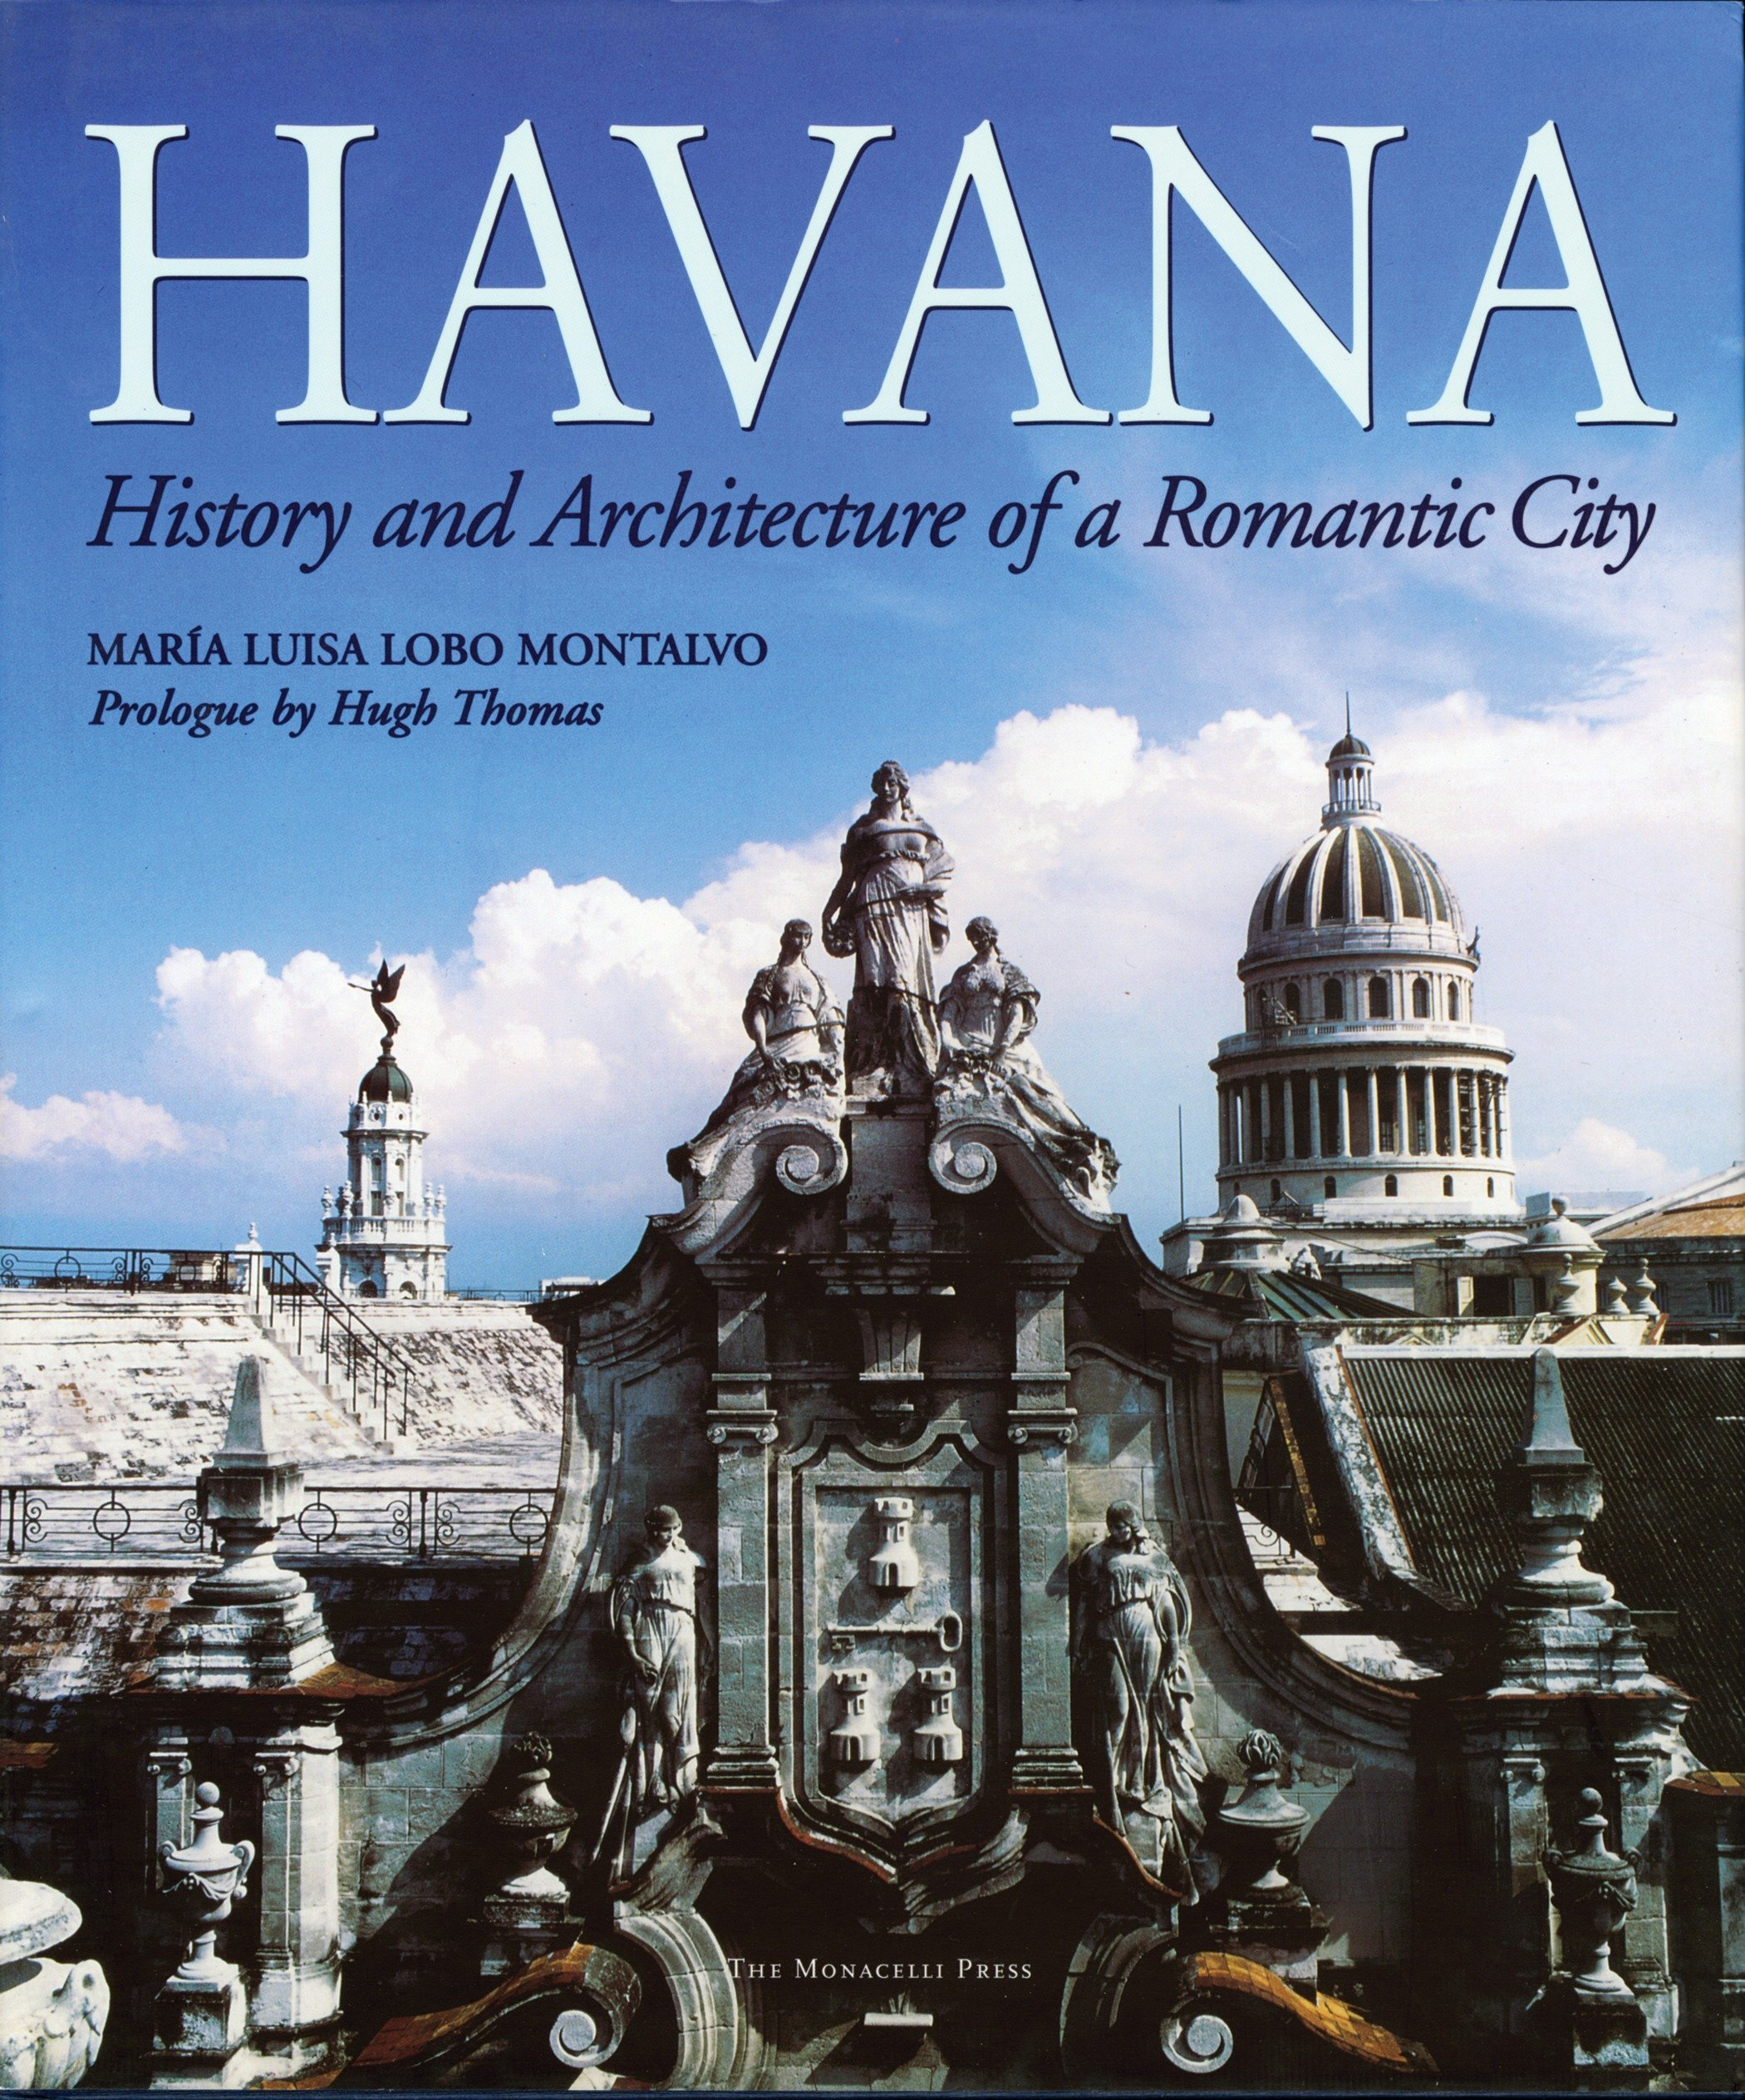 Havana: History and Architecture of a Romantic City by Brand: The Monacelli Press